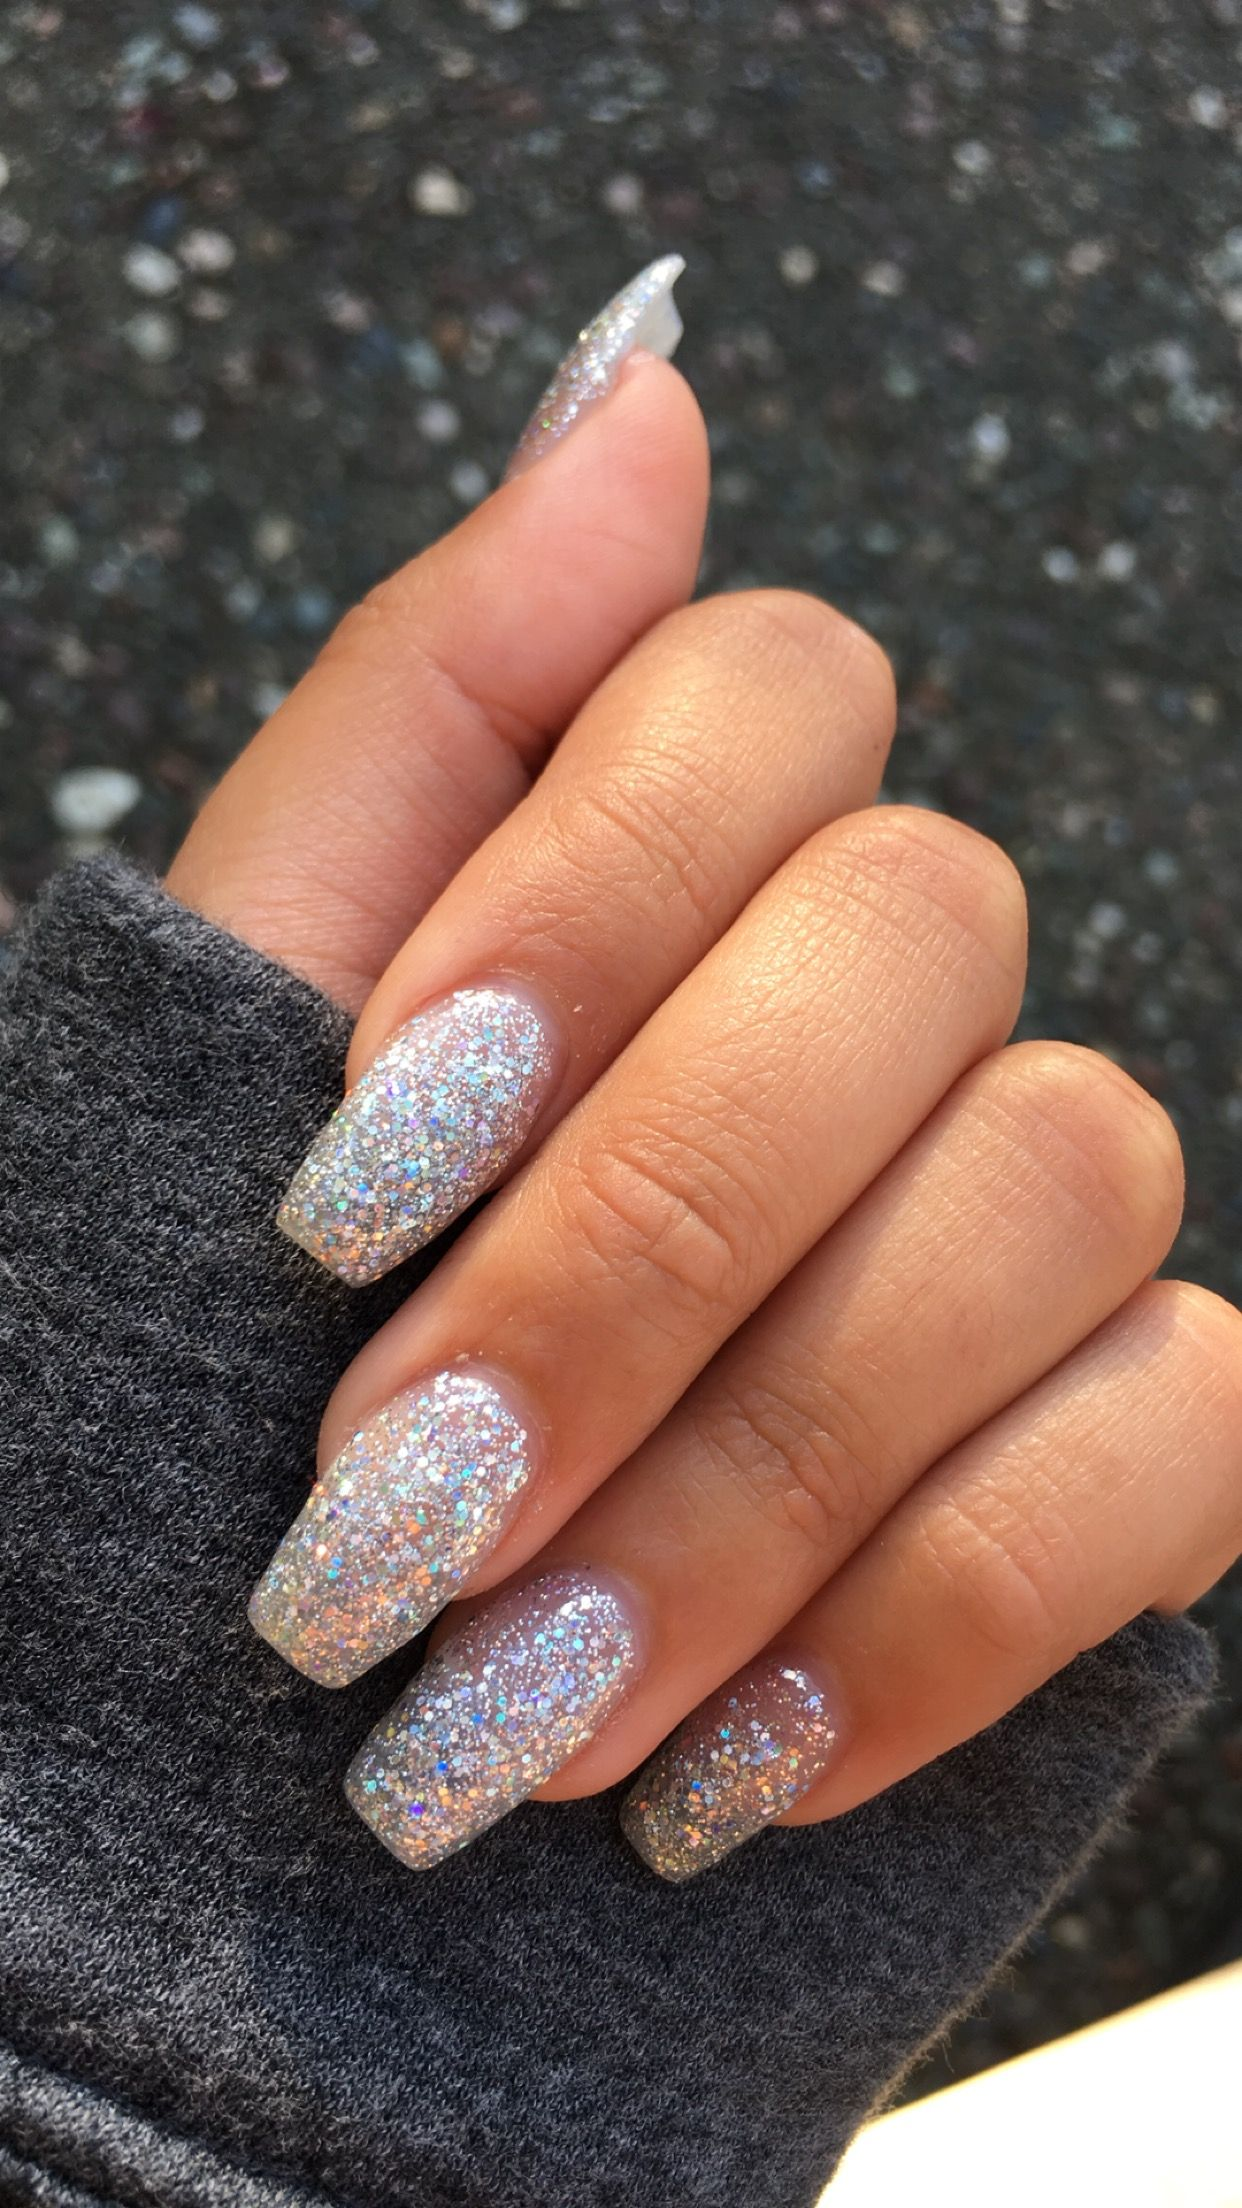 Sparkly Nails Sparkly Acrylic Nails Silver Glitter Nails Pink Holographic Nails